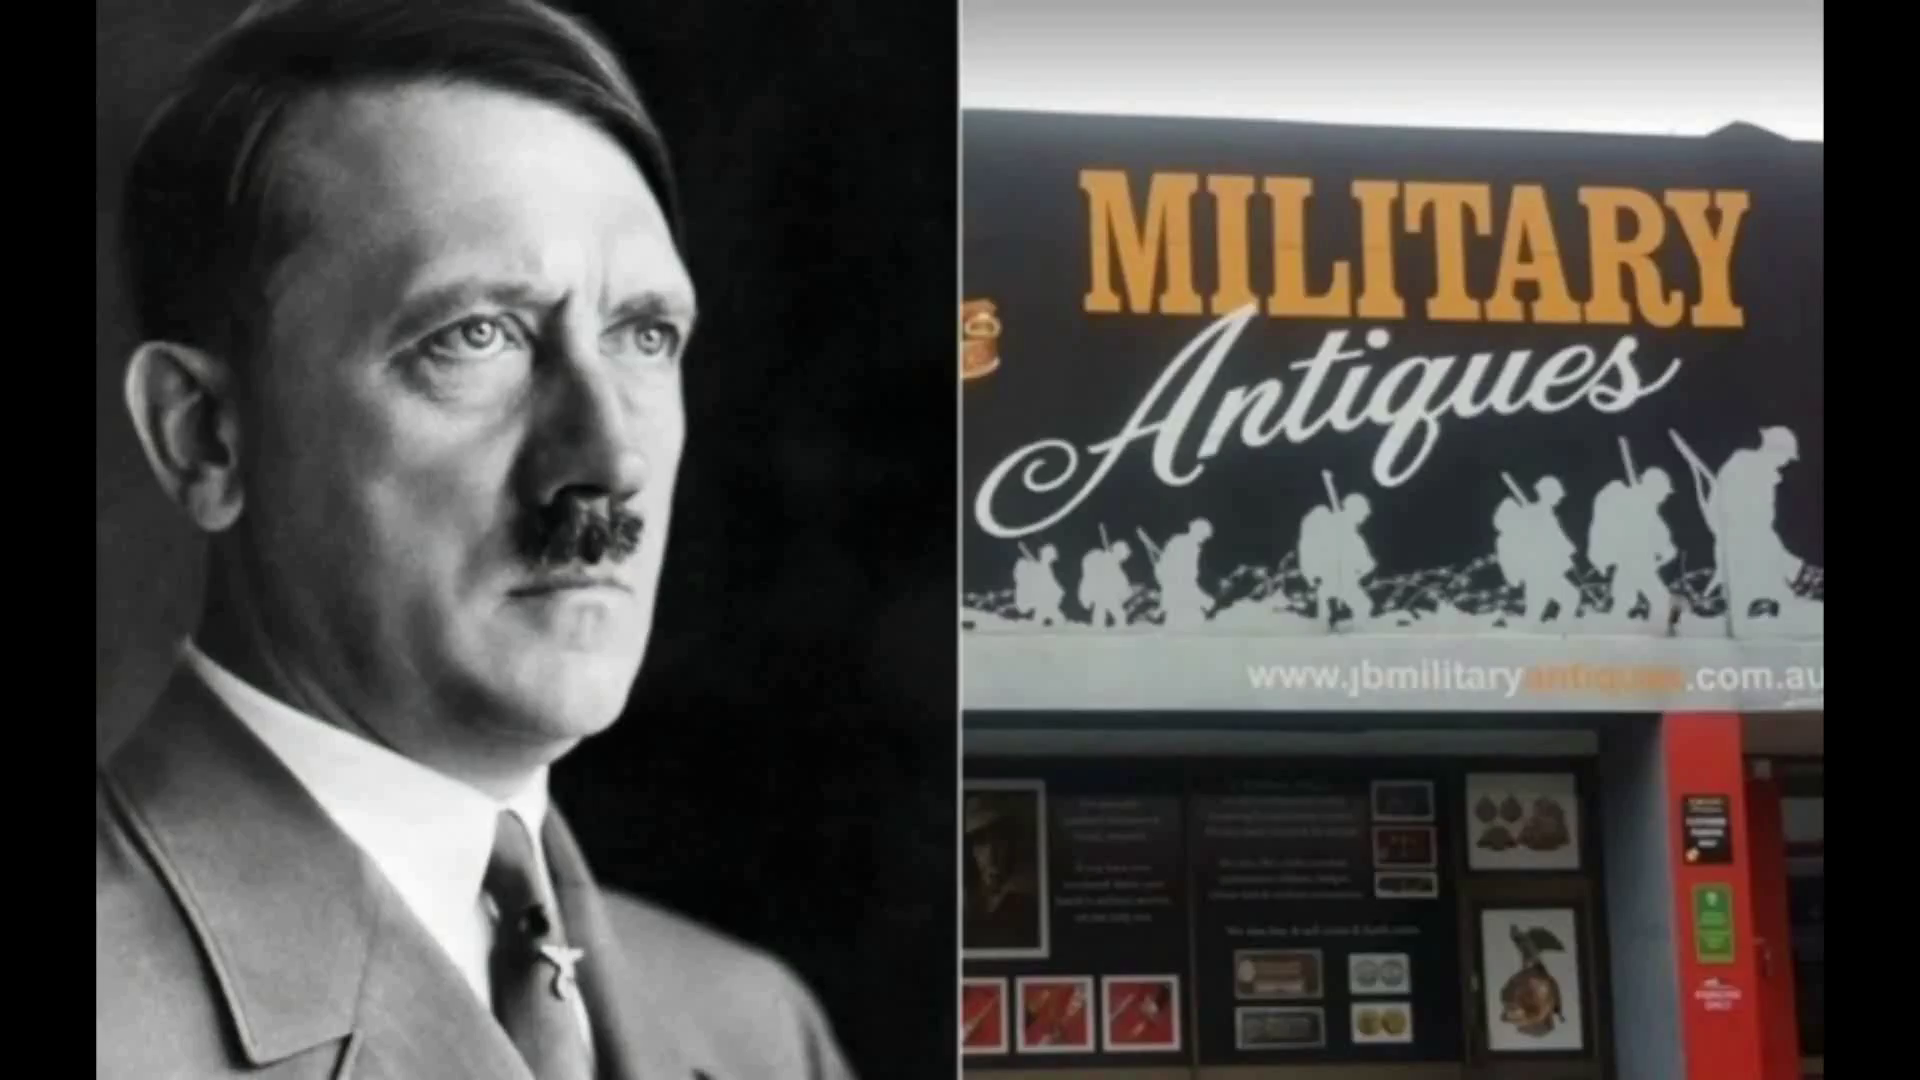 Perth Adolf Hitler Memrobilia auctioned